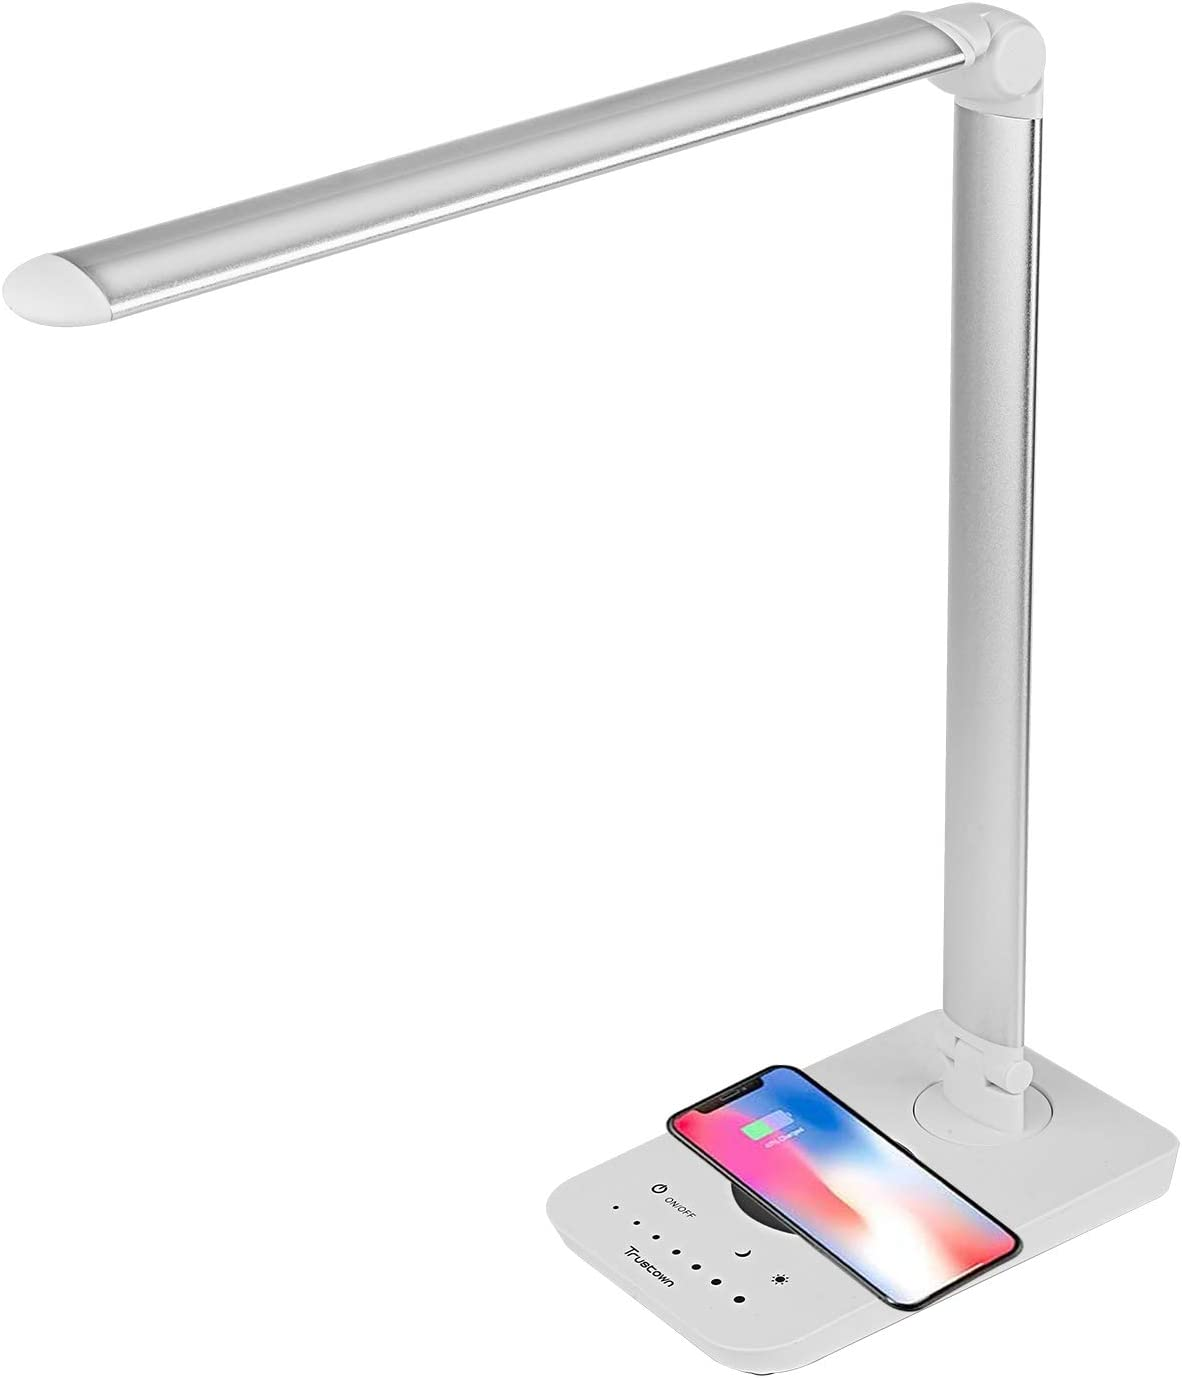 Trustown LED Desk Lamp Wireless Charger, Desk Light with USB Charging Port, 7.5W for iPhones and 10W for Samsung Phones, 9 Lighting Modes with 7 Brightness Levels, White